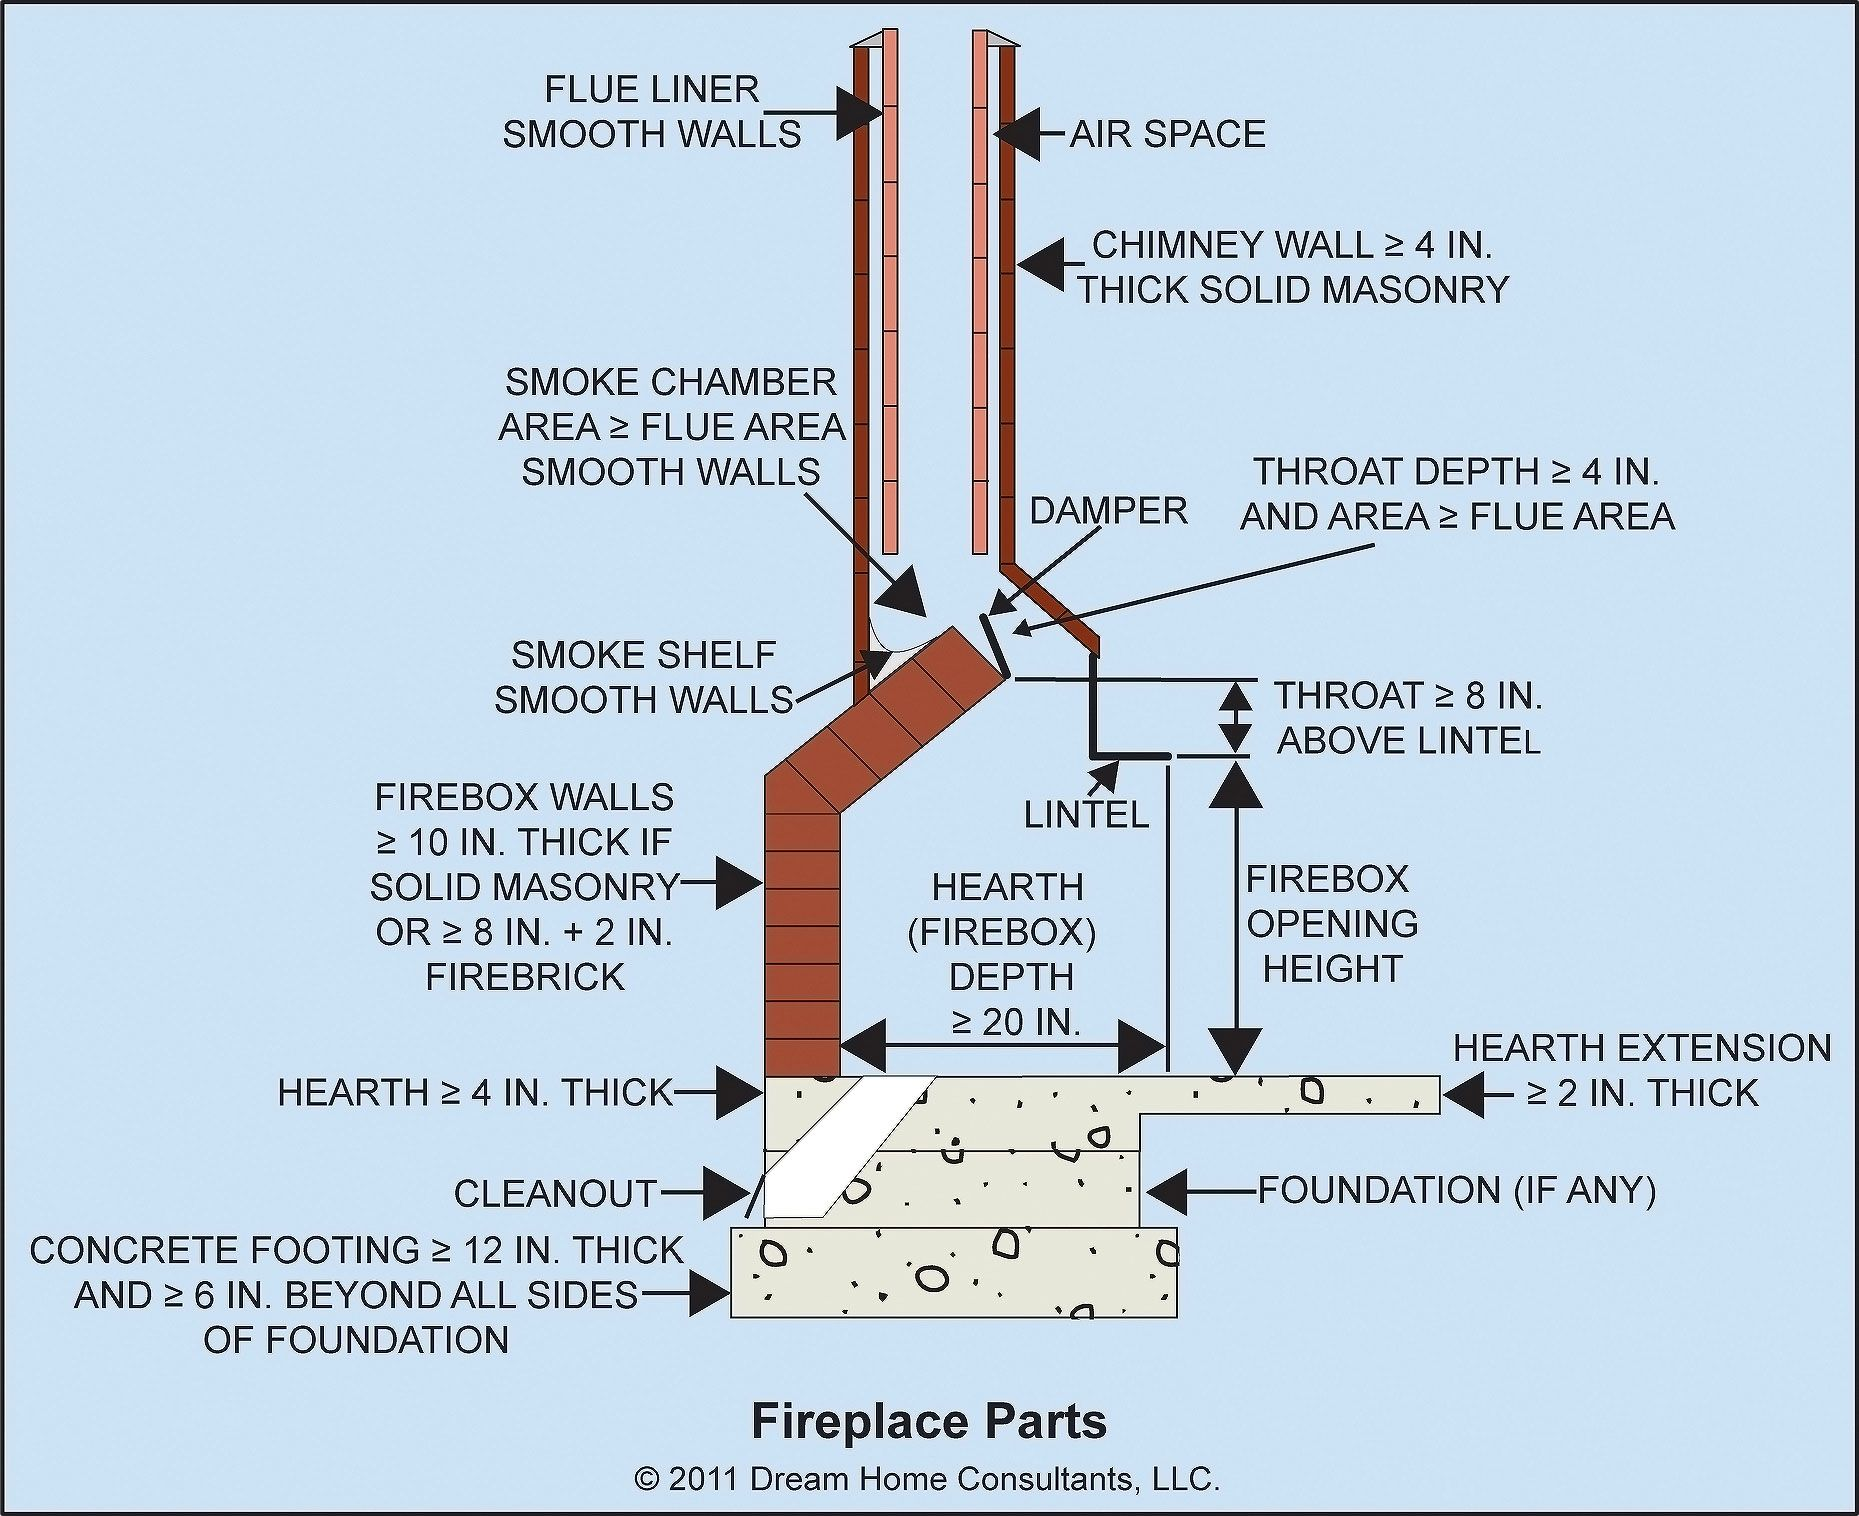 firebox diagram fireplace parts home fireplace fireplaces diagram construction fireplace set [ 1859 x 1516 Pixel ]